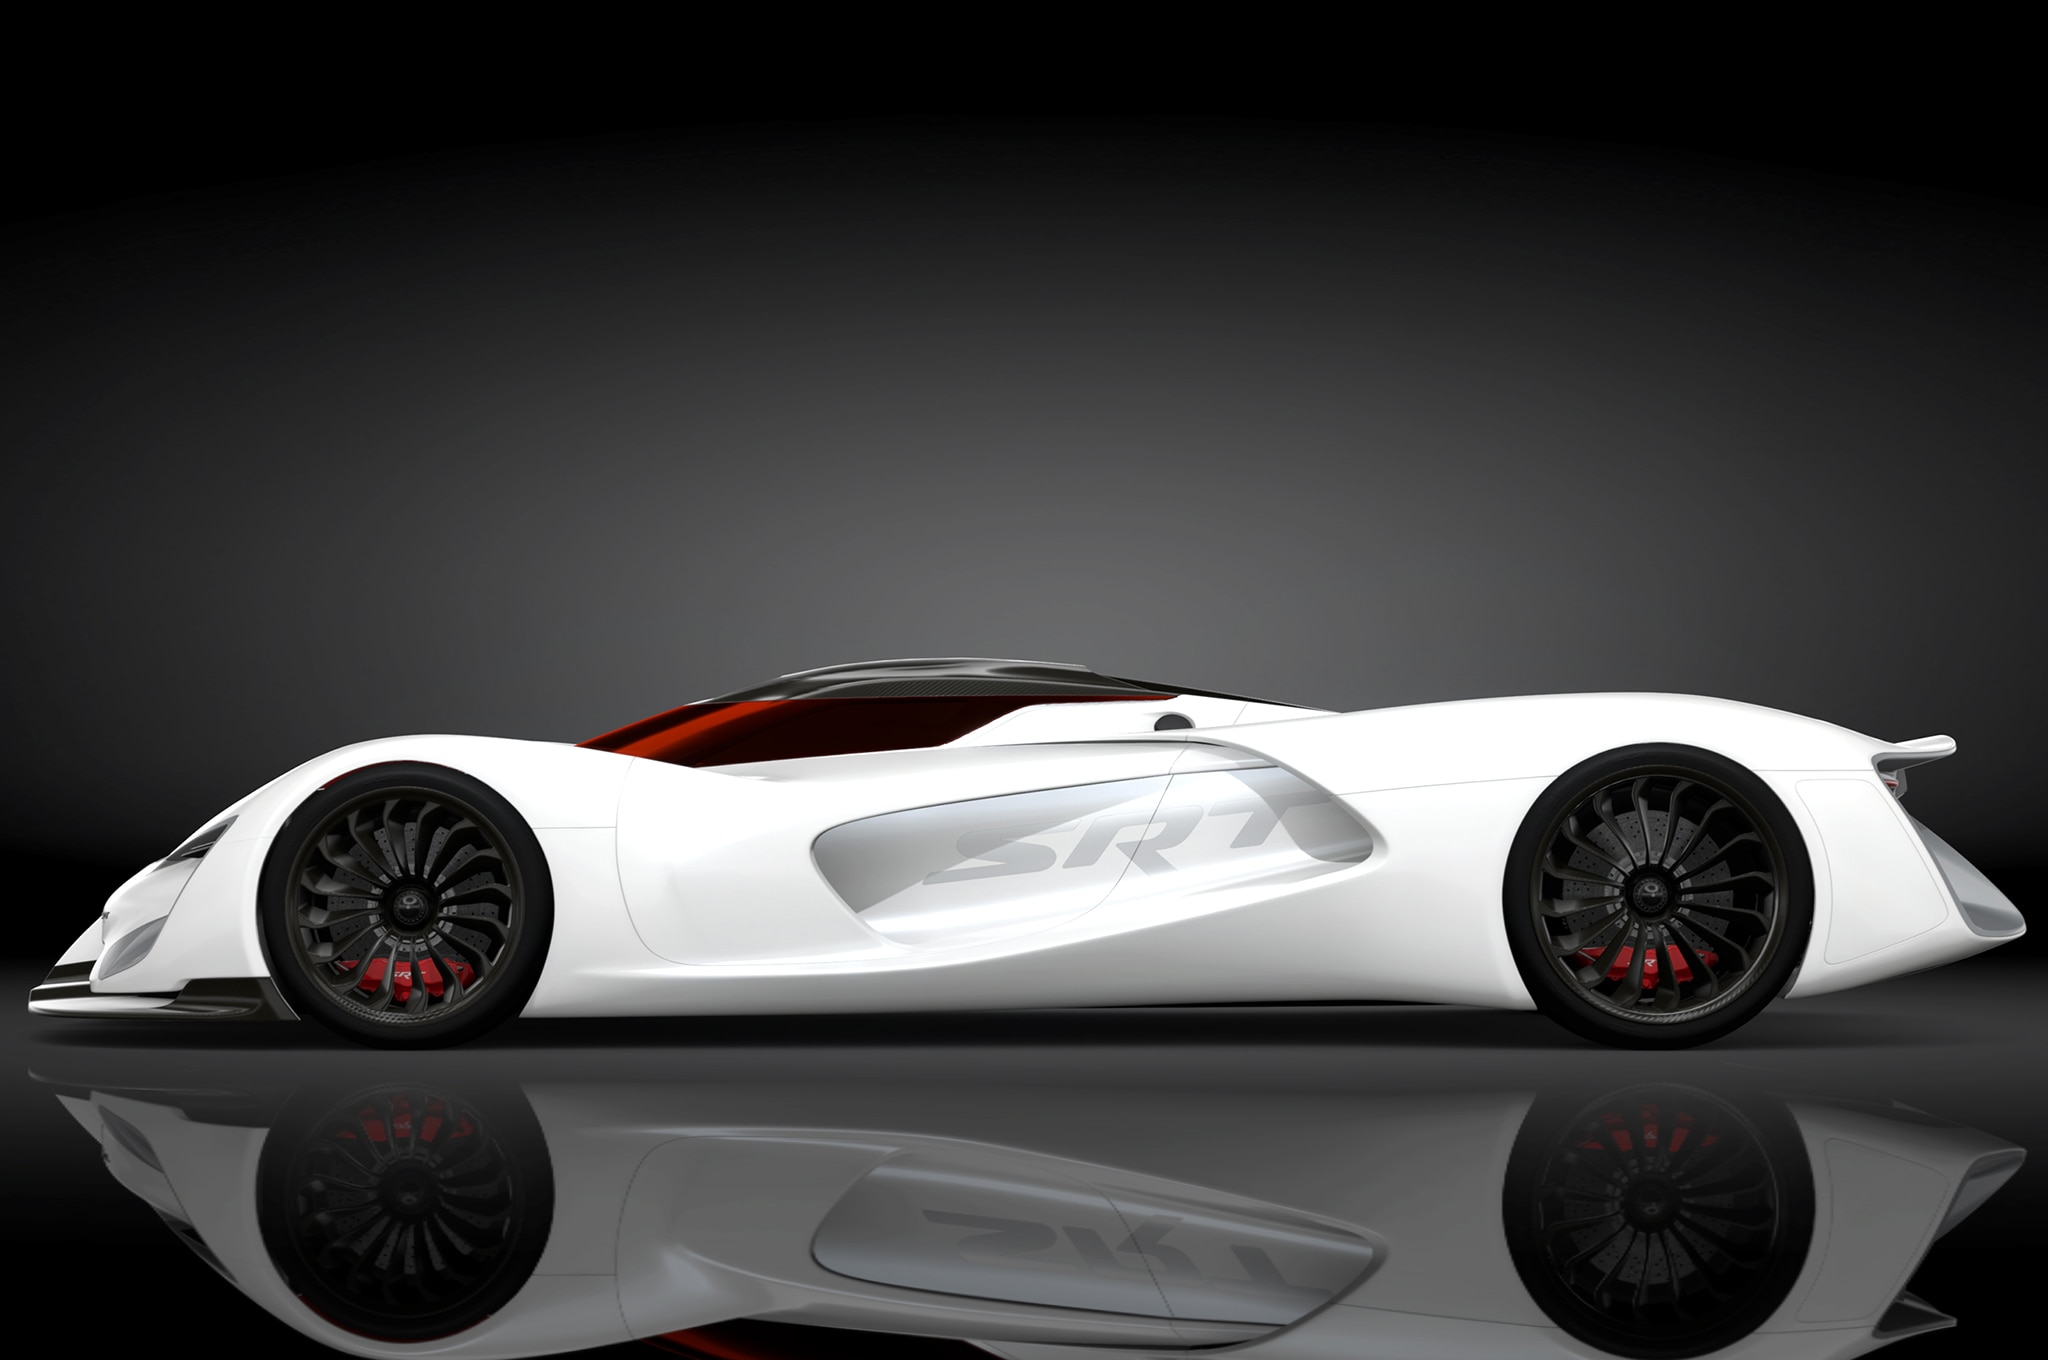 New Srt Tomahawk Vision Gran Turismo Car Tests The Limits Of Reality